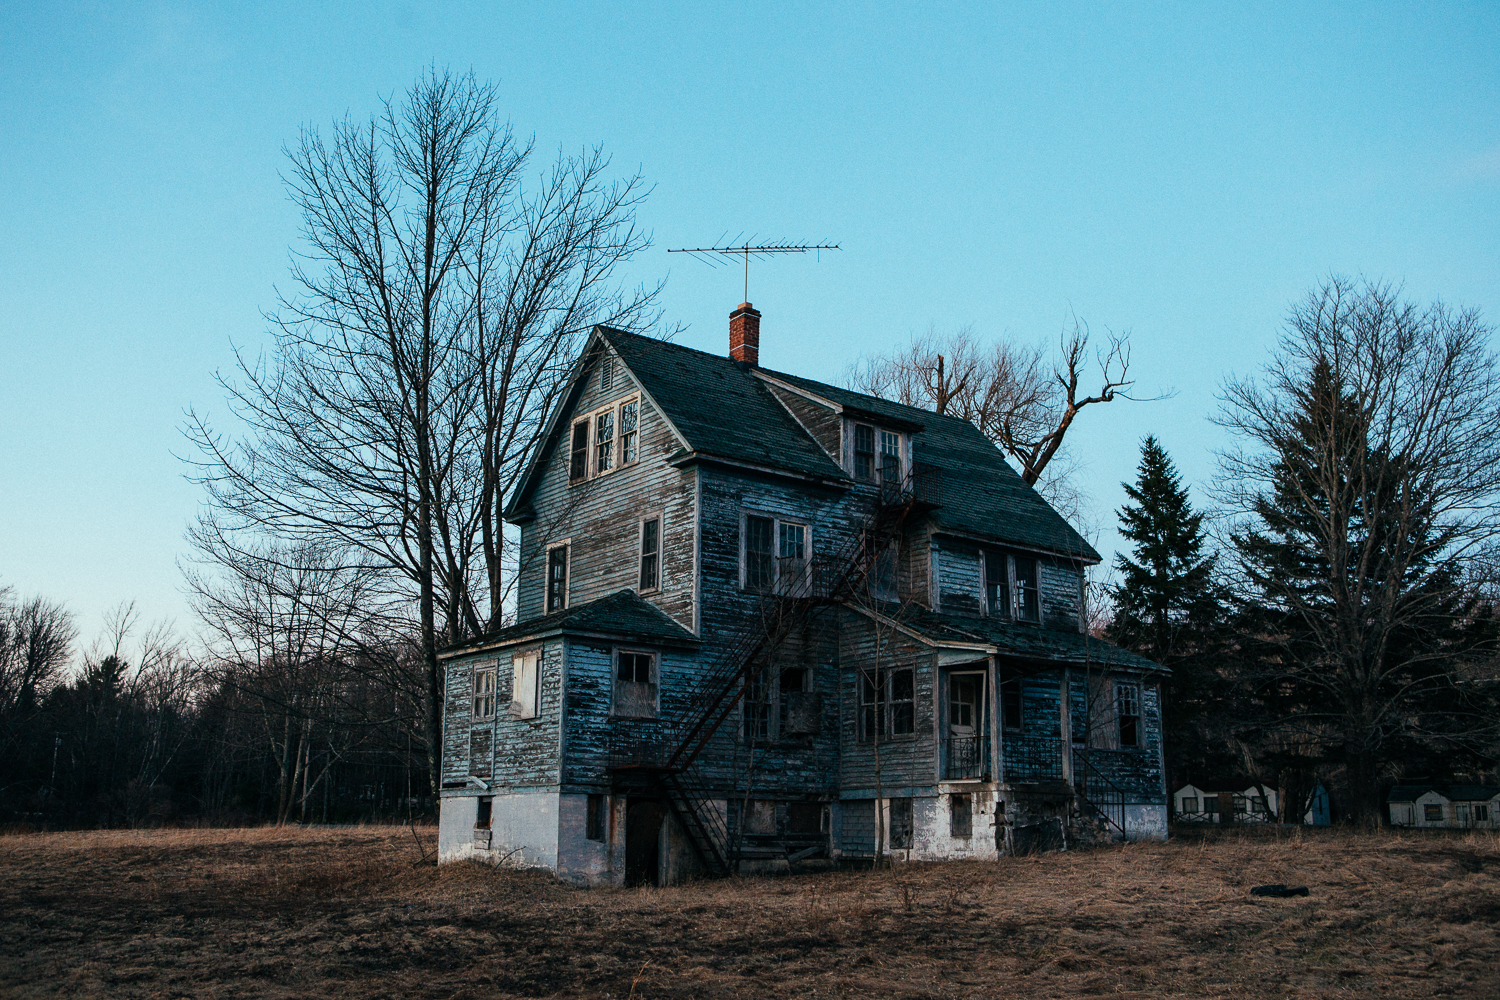 While heading out of town, I stopped at this real spooky looking home. It could be a great set for a horror film.